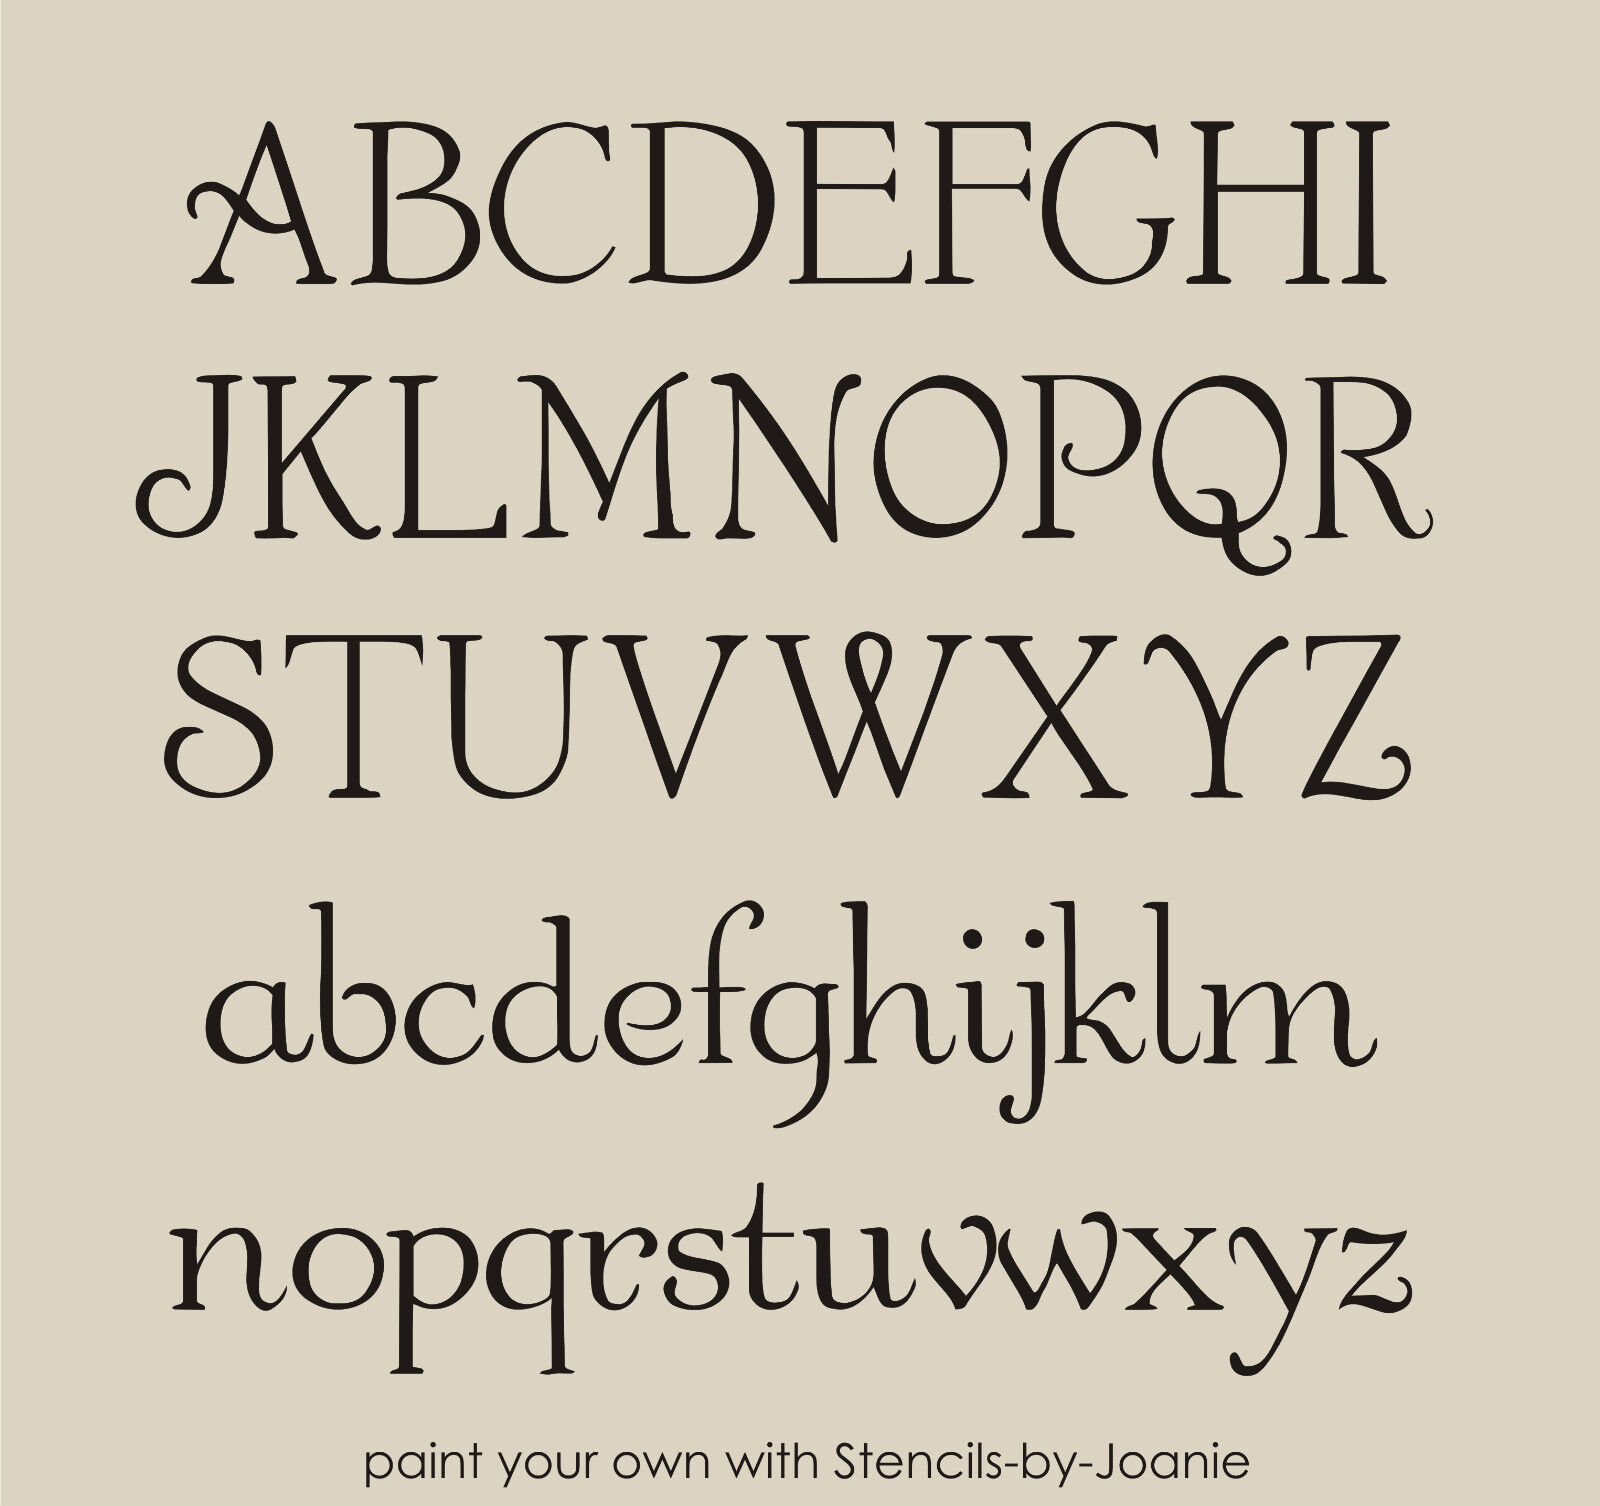 French Chic Alphabet Stencil Shabby Font 3 Caps & Lc Letters Country Art Signs